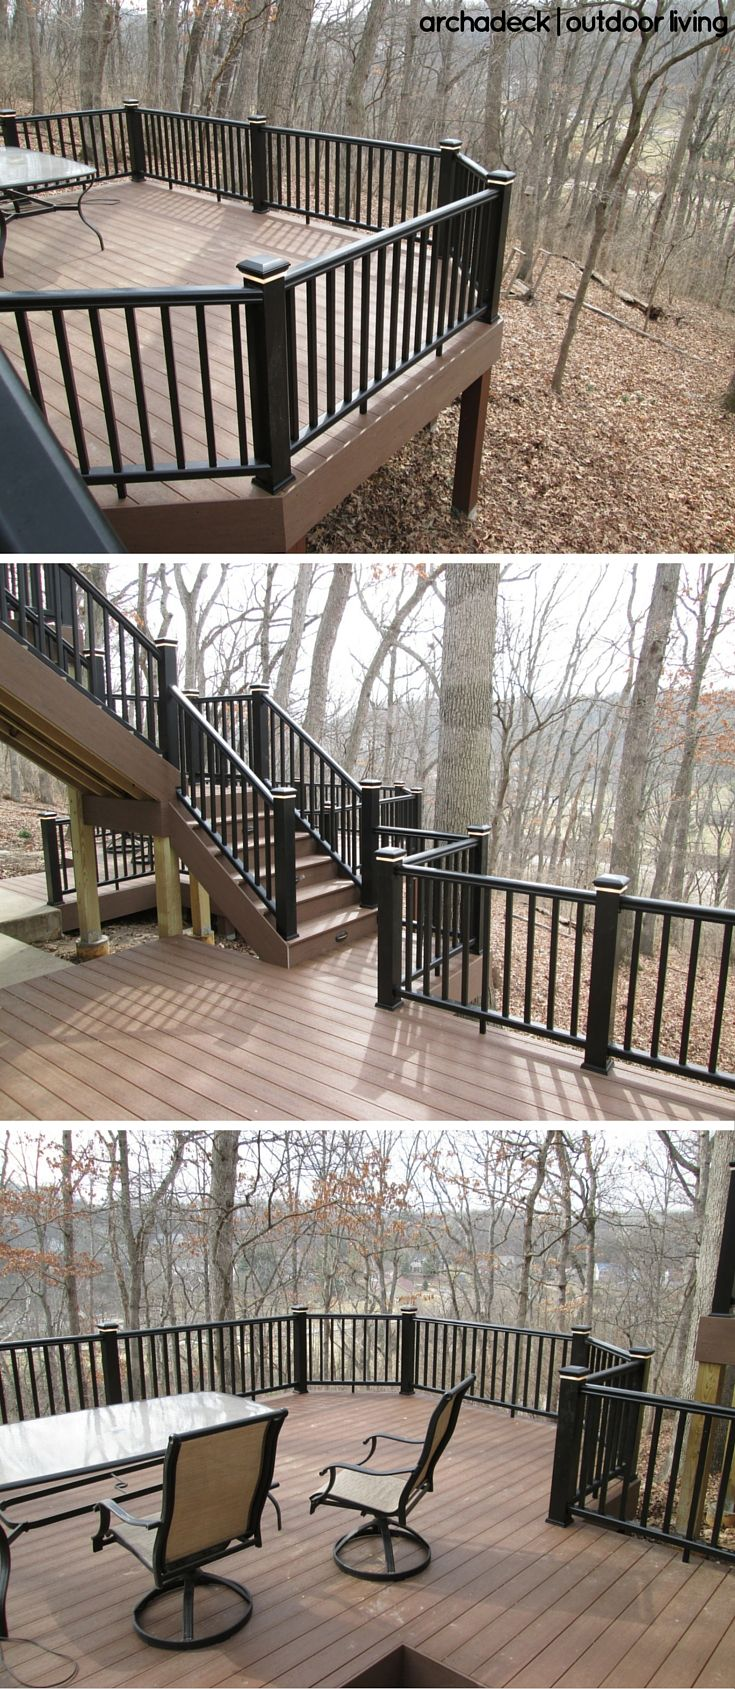 One Trend For Deck Designs This Season Is Pairing Darker